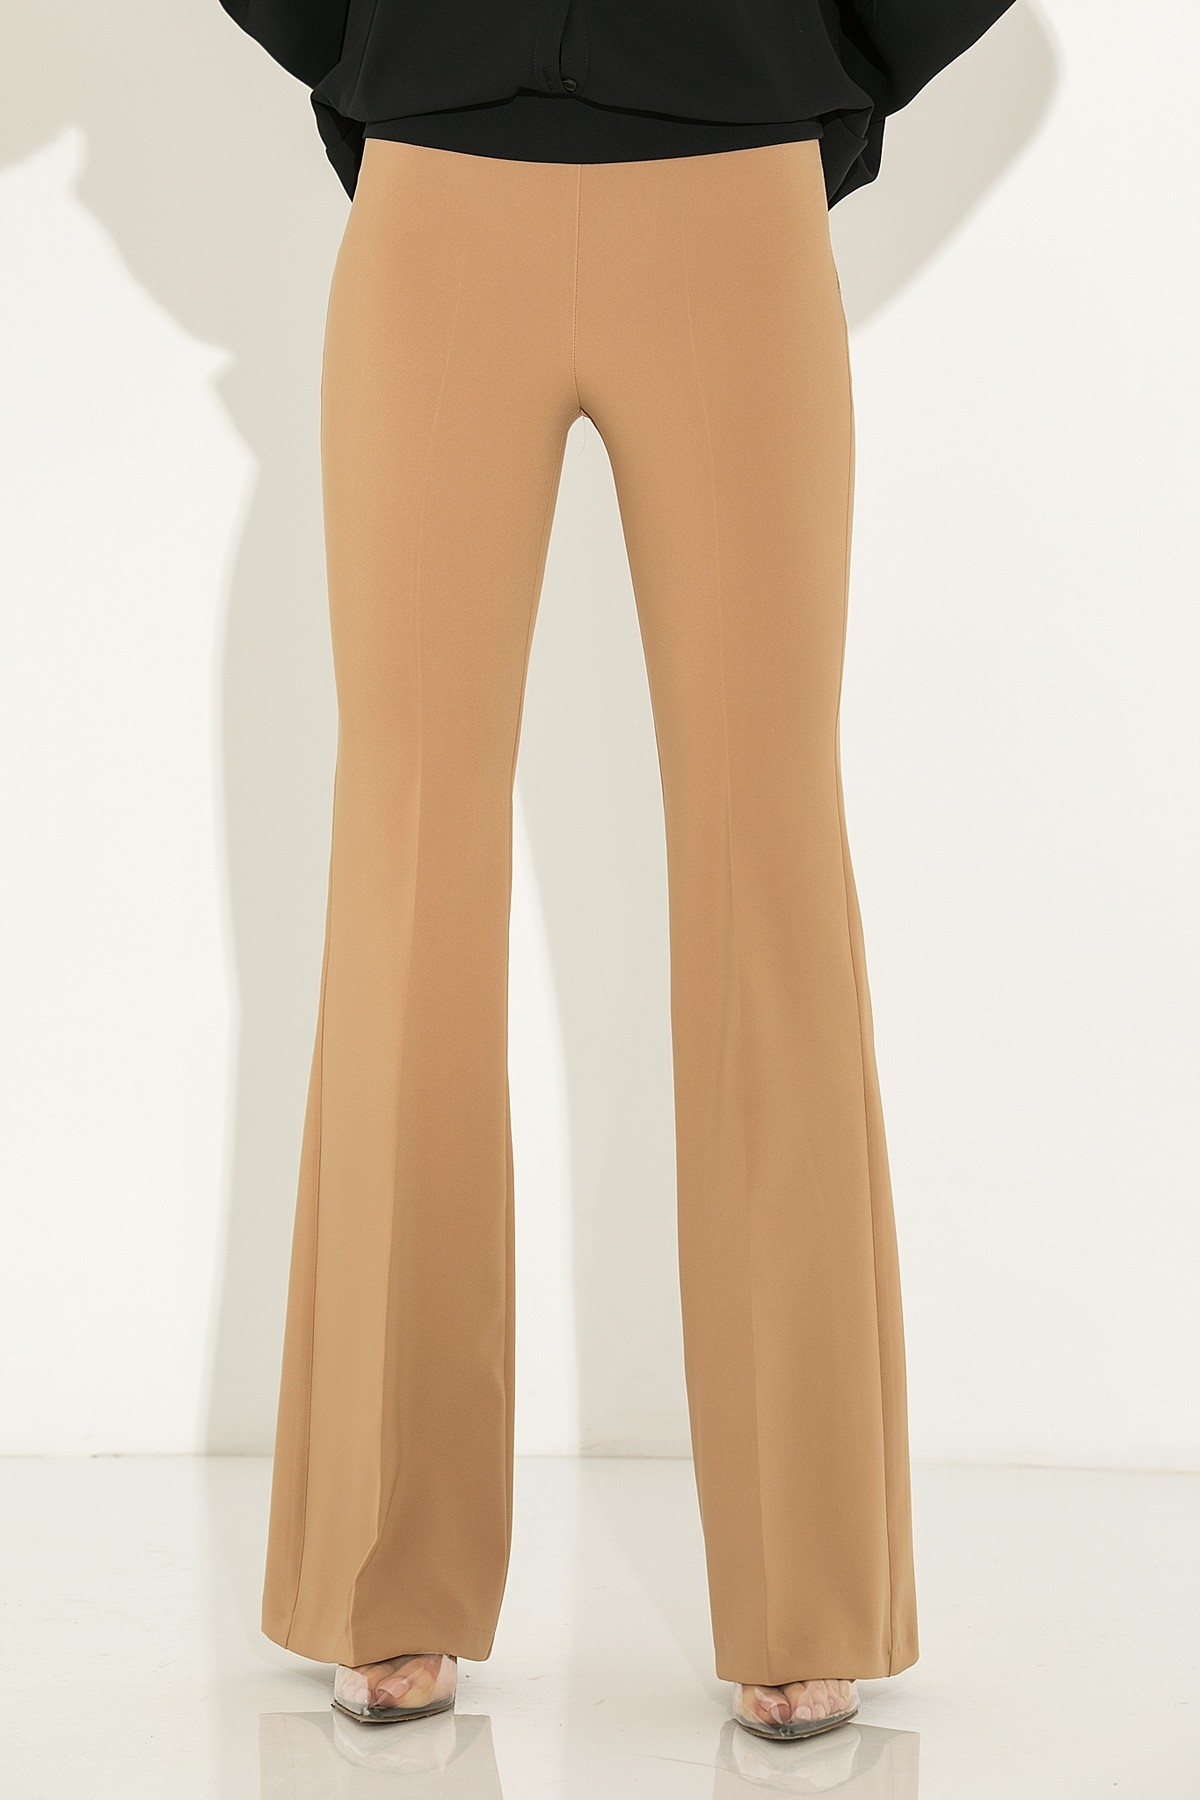 BEIGE HIGH WAISTED FLARED PANTS